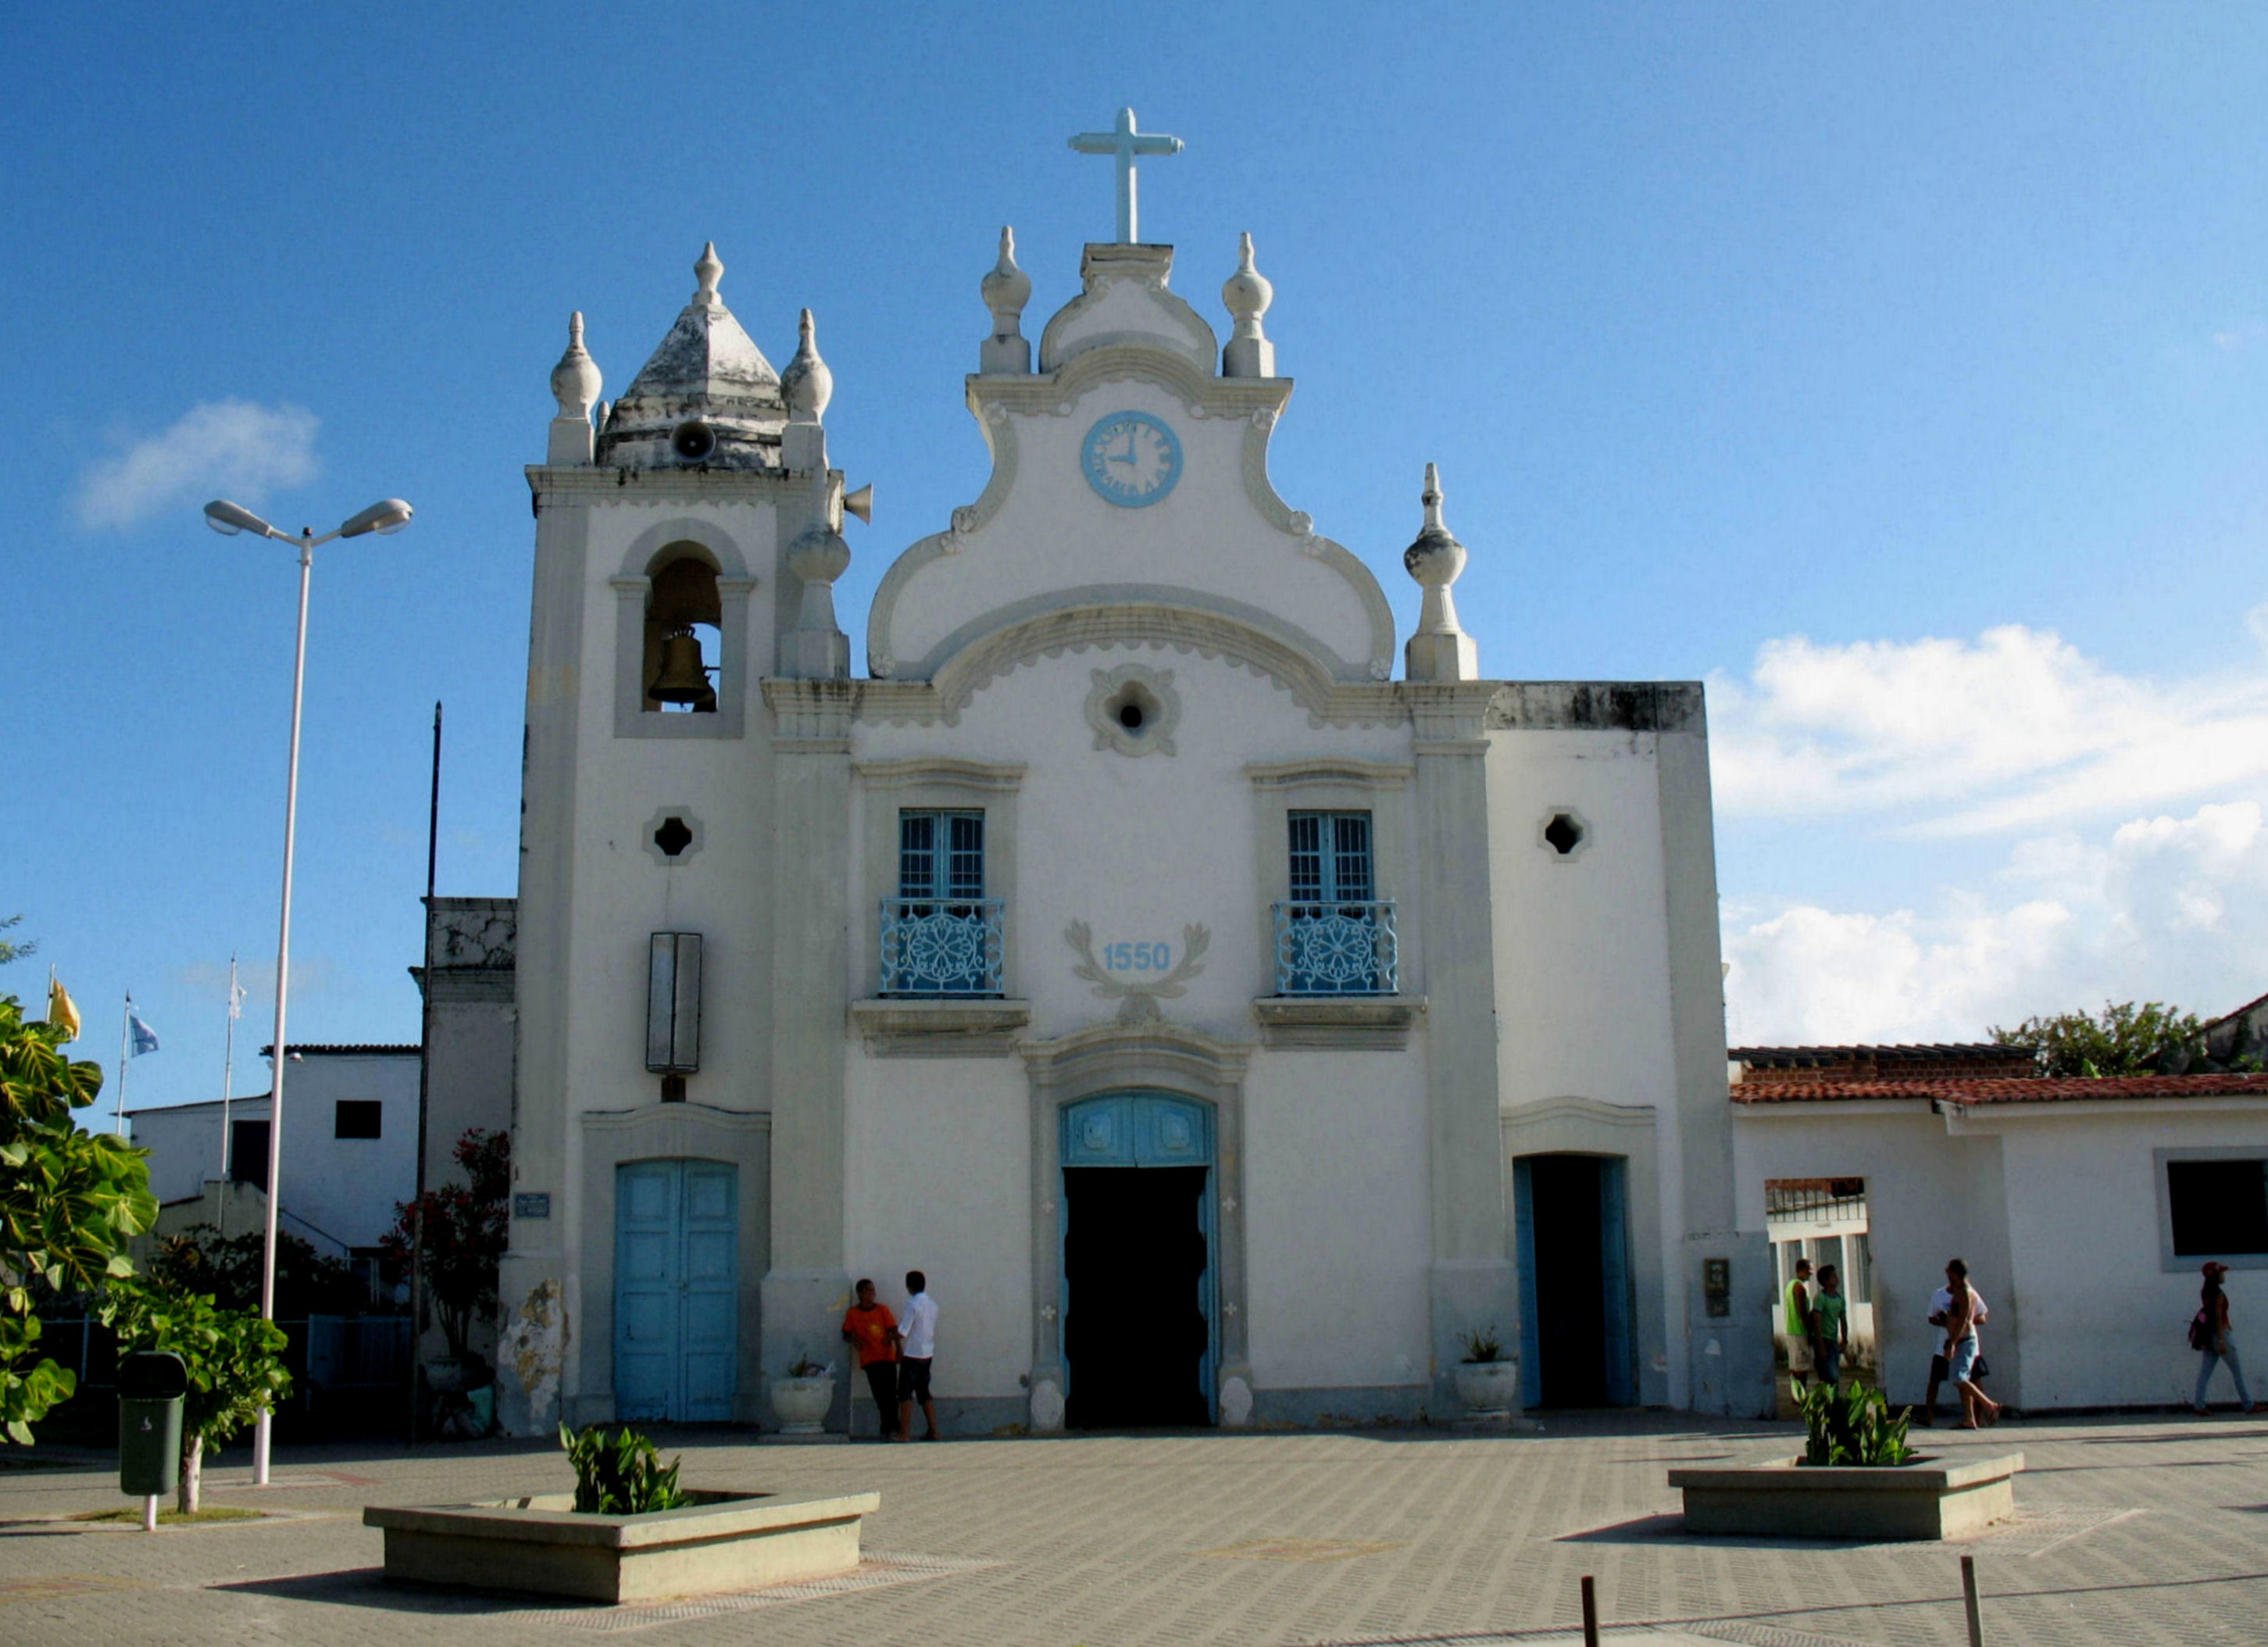 A view of Itamaraca's local church from the front of the building in a town square